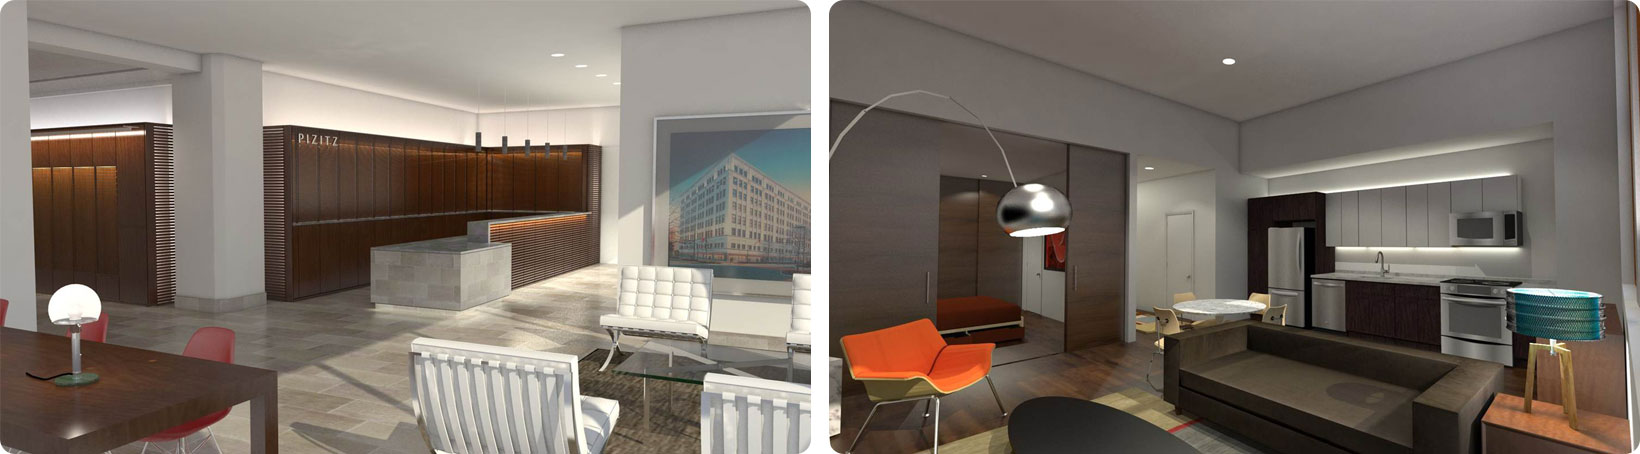 The apartment area of the Pizitz building will have its own entrance off 19th Street. (contributed)